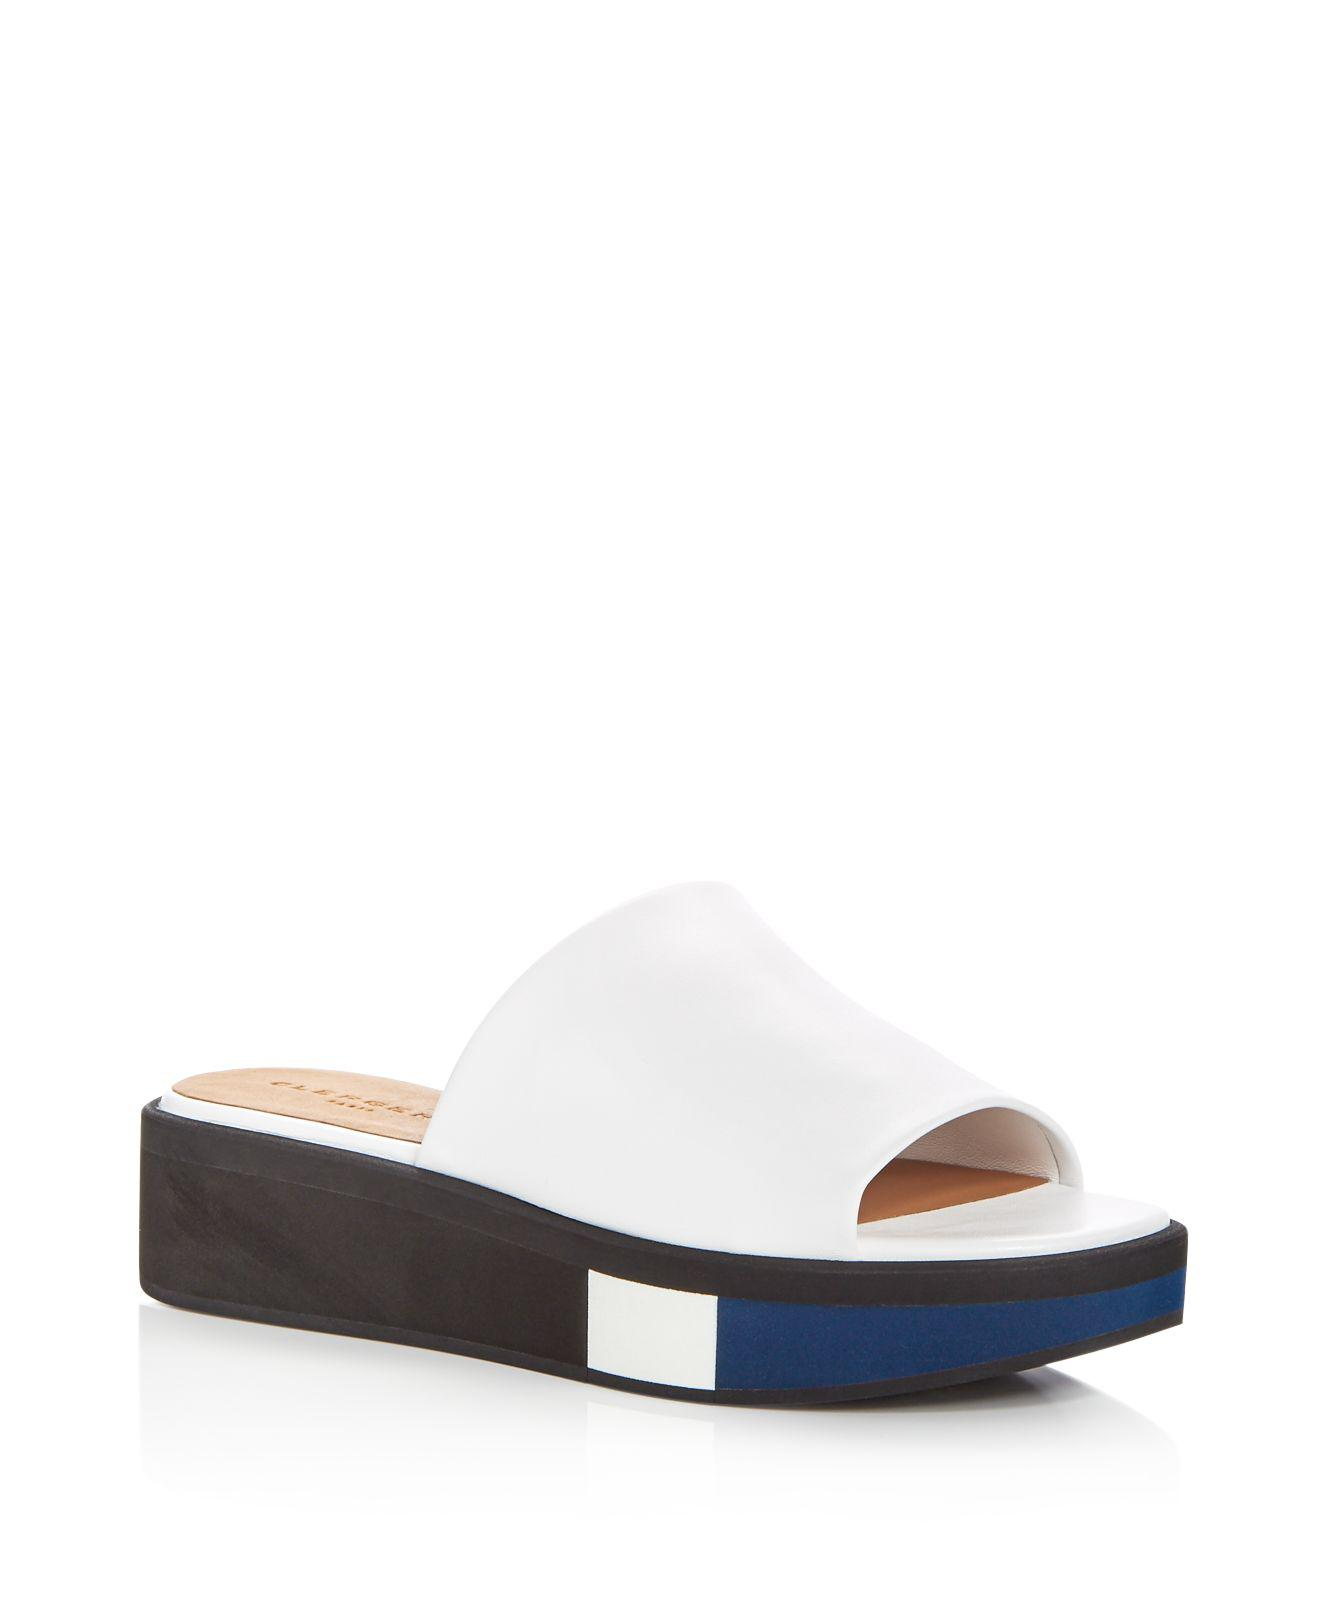 discount shop offer Robert Clergerie Embellished Slide Sandals brand new unisex cheap online quality for sale free shipping recommend for sale ucTpXj8